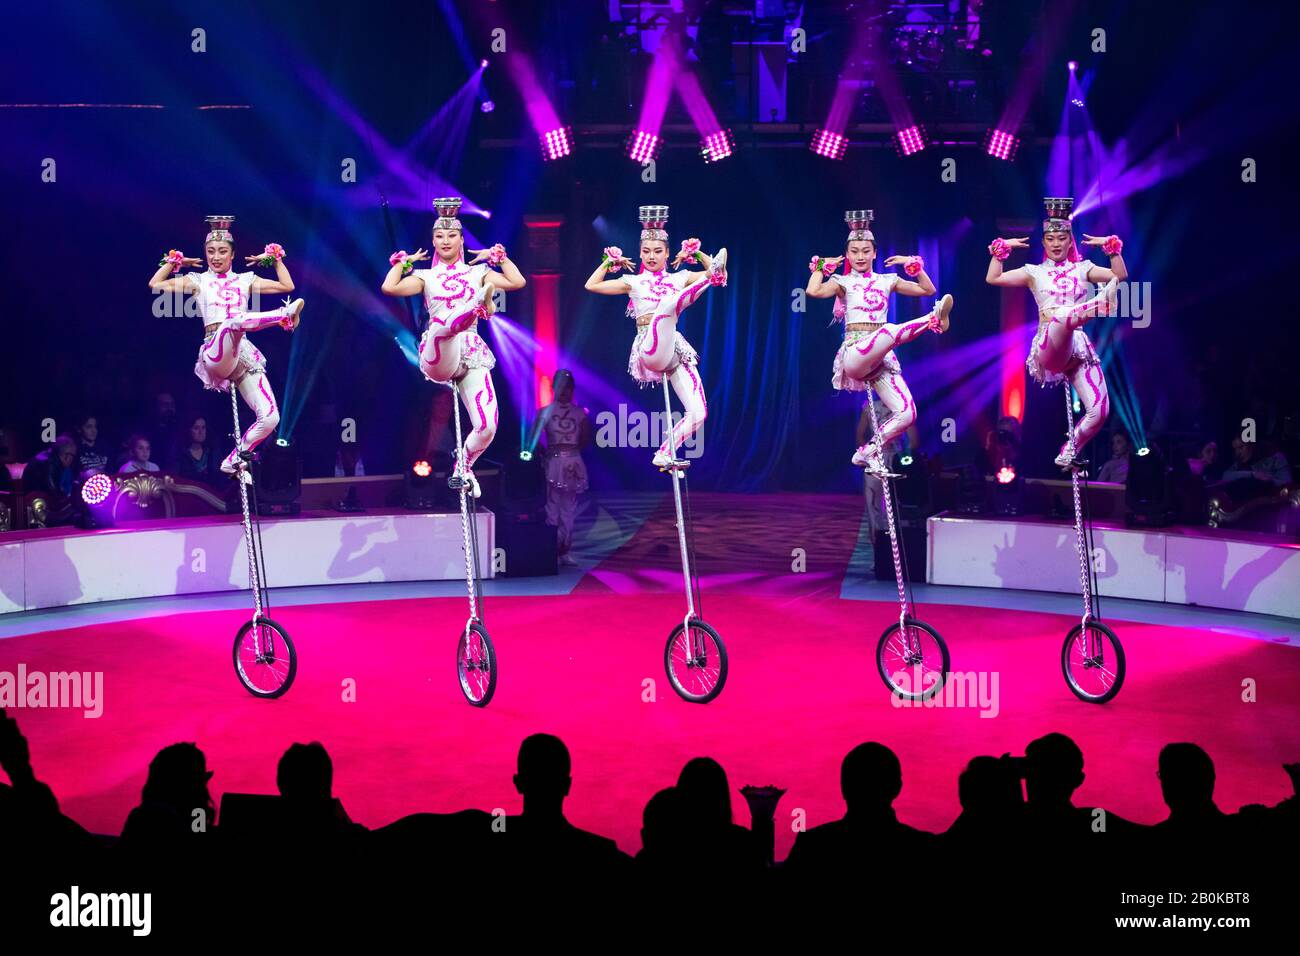 GIRONA, SPAIN - FEBRUARY 17: Chinese Yinchuan Acrobatic Troupe of China perform unicycles during 'Elefant d'Or' International Circus Festival at Parc Stock Photo